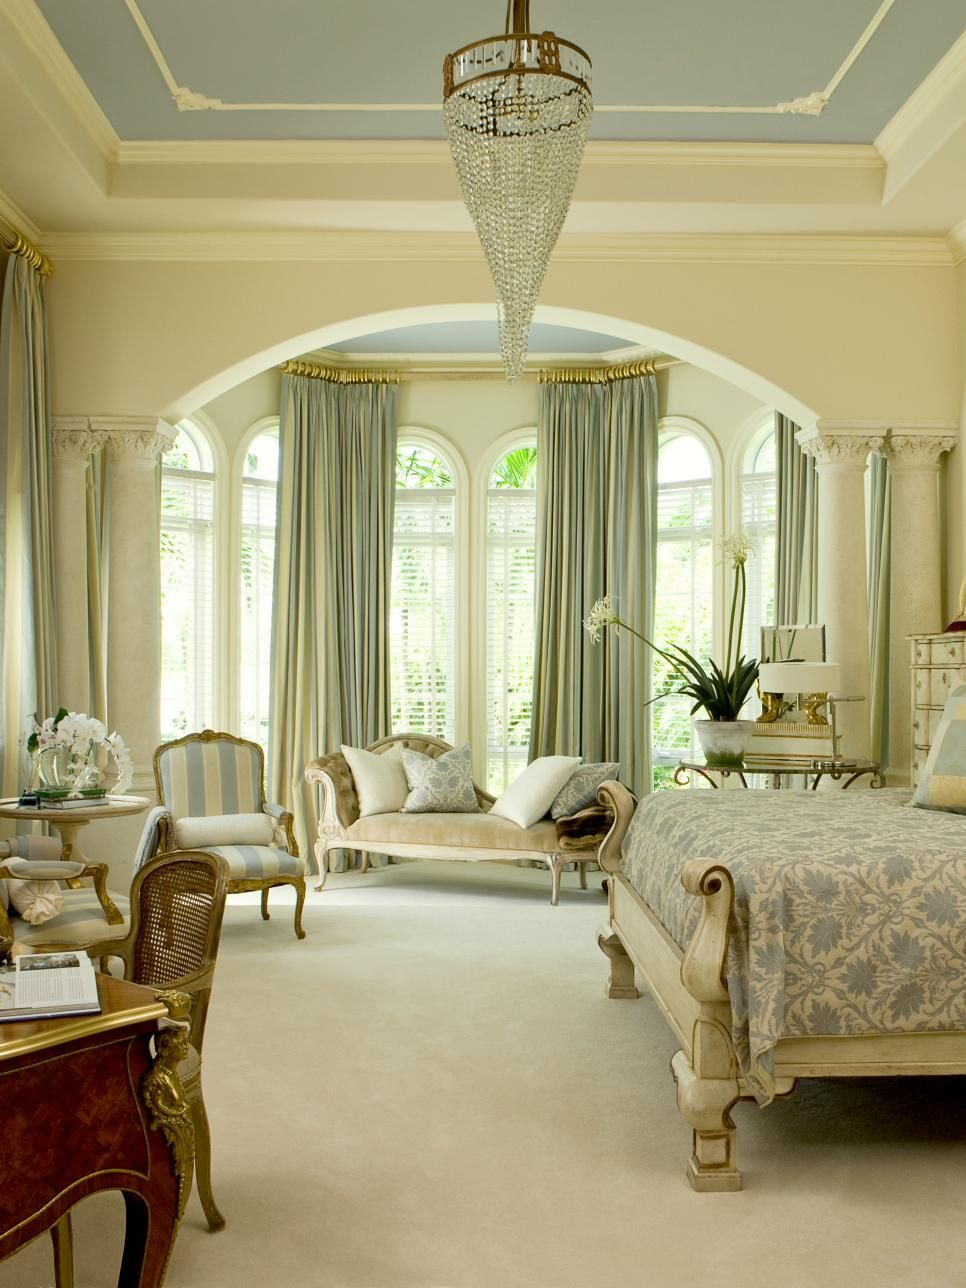 8 Window Treatment Ideas For Your Bedroom